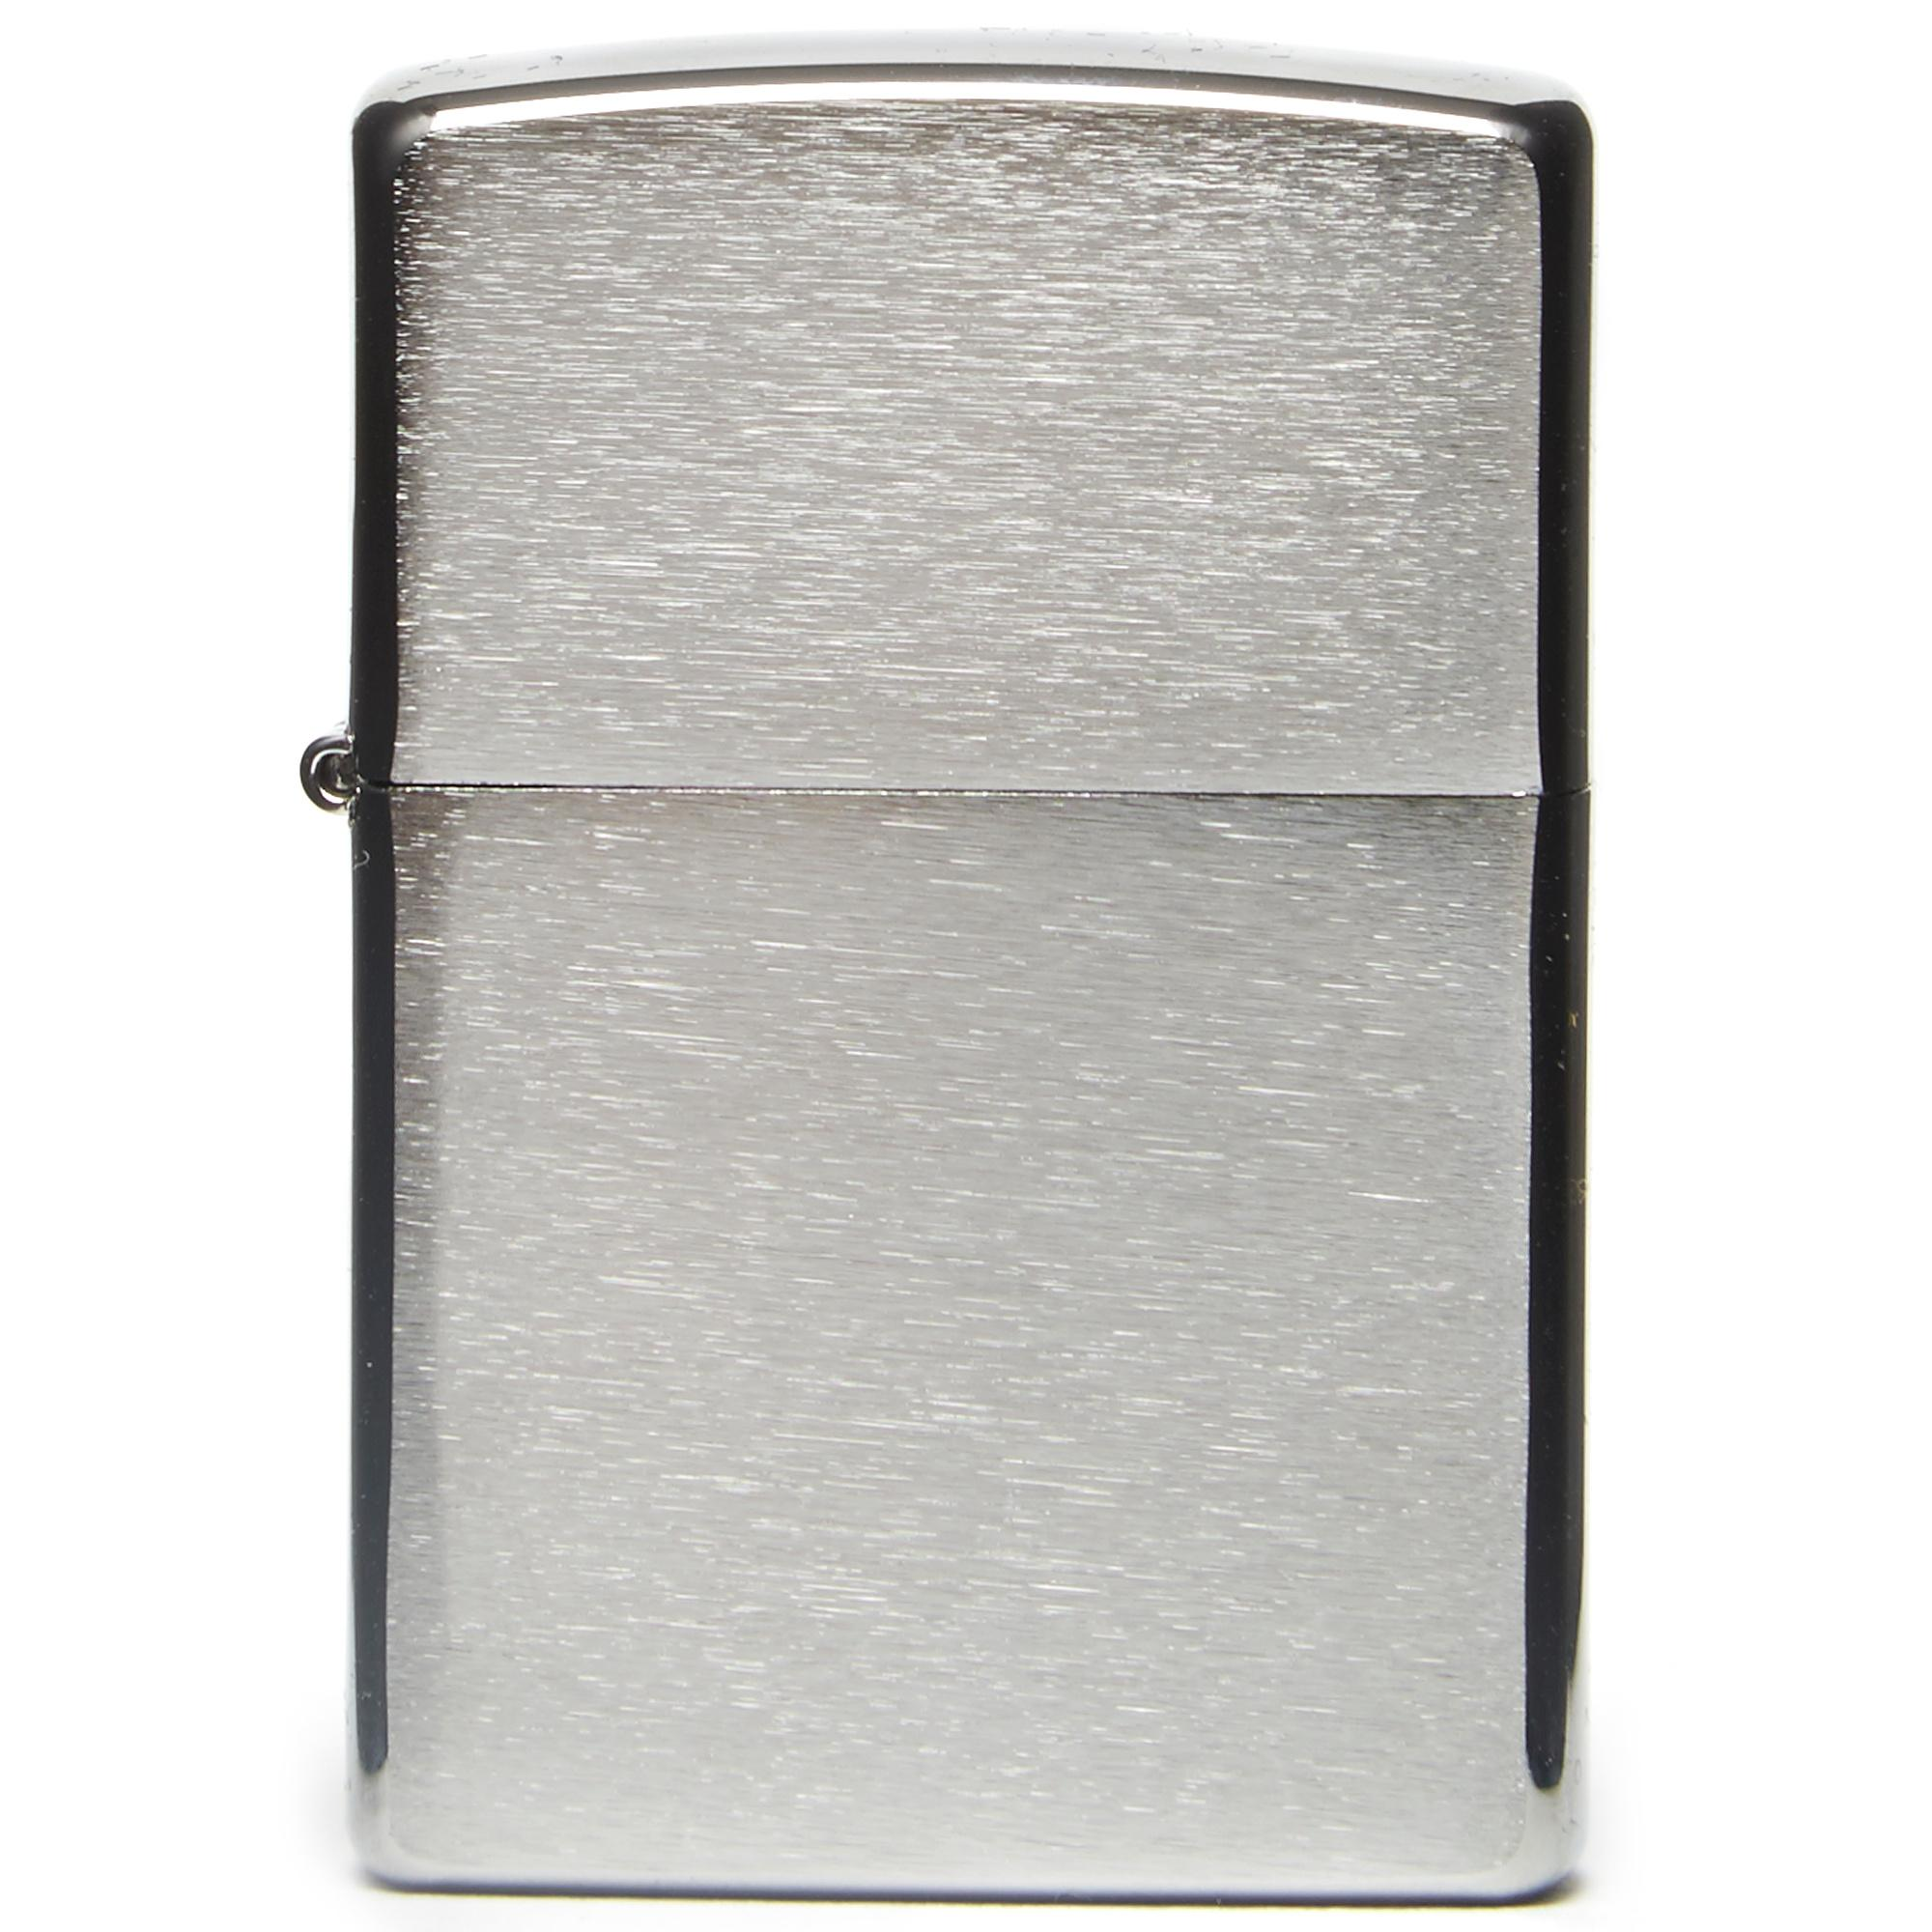 Buy cheap Zippo lighter - compare Men's Jewellery prices for best UK deals